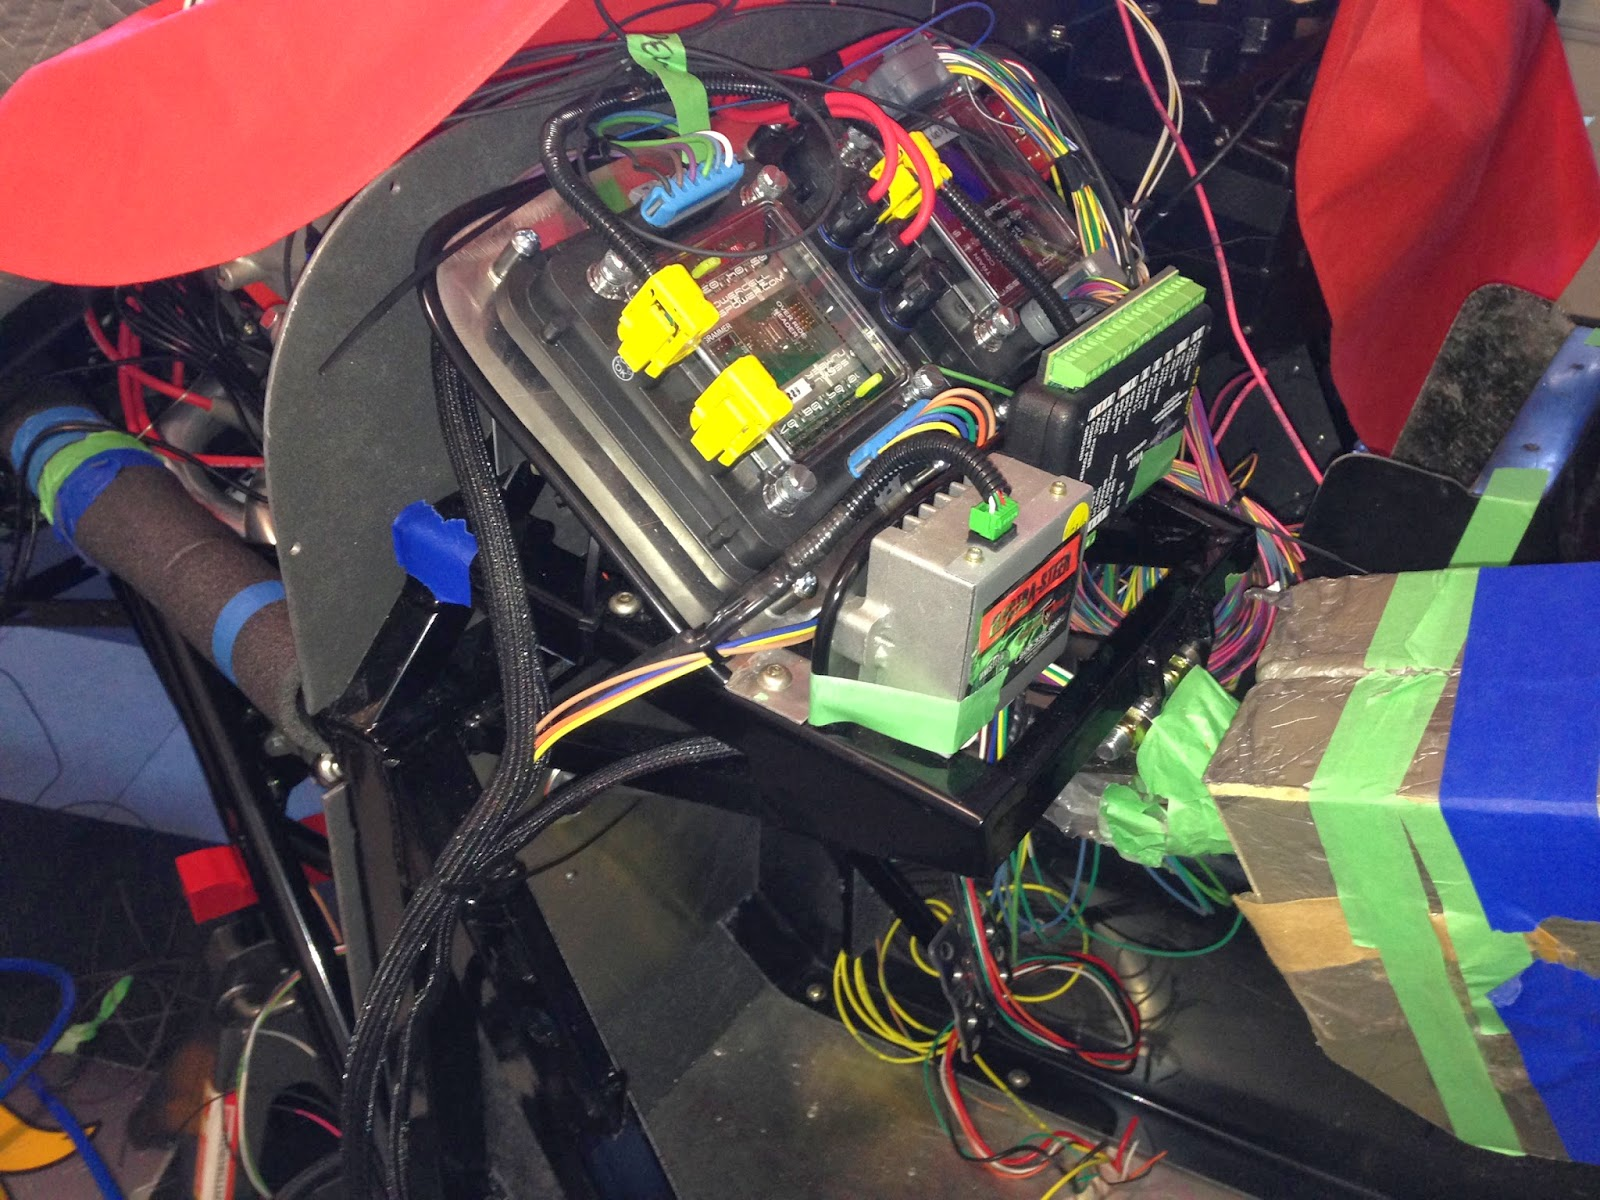 Nicks 33 Hot Rod Spot Wiring The Infinitybox Intelligent Digital Home Systems Things Behind Dash Are Starting To Shape Up It Turns Out Much There Not As Many Wires Being Used Is Supplied In System See Coil Of